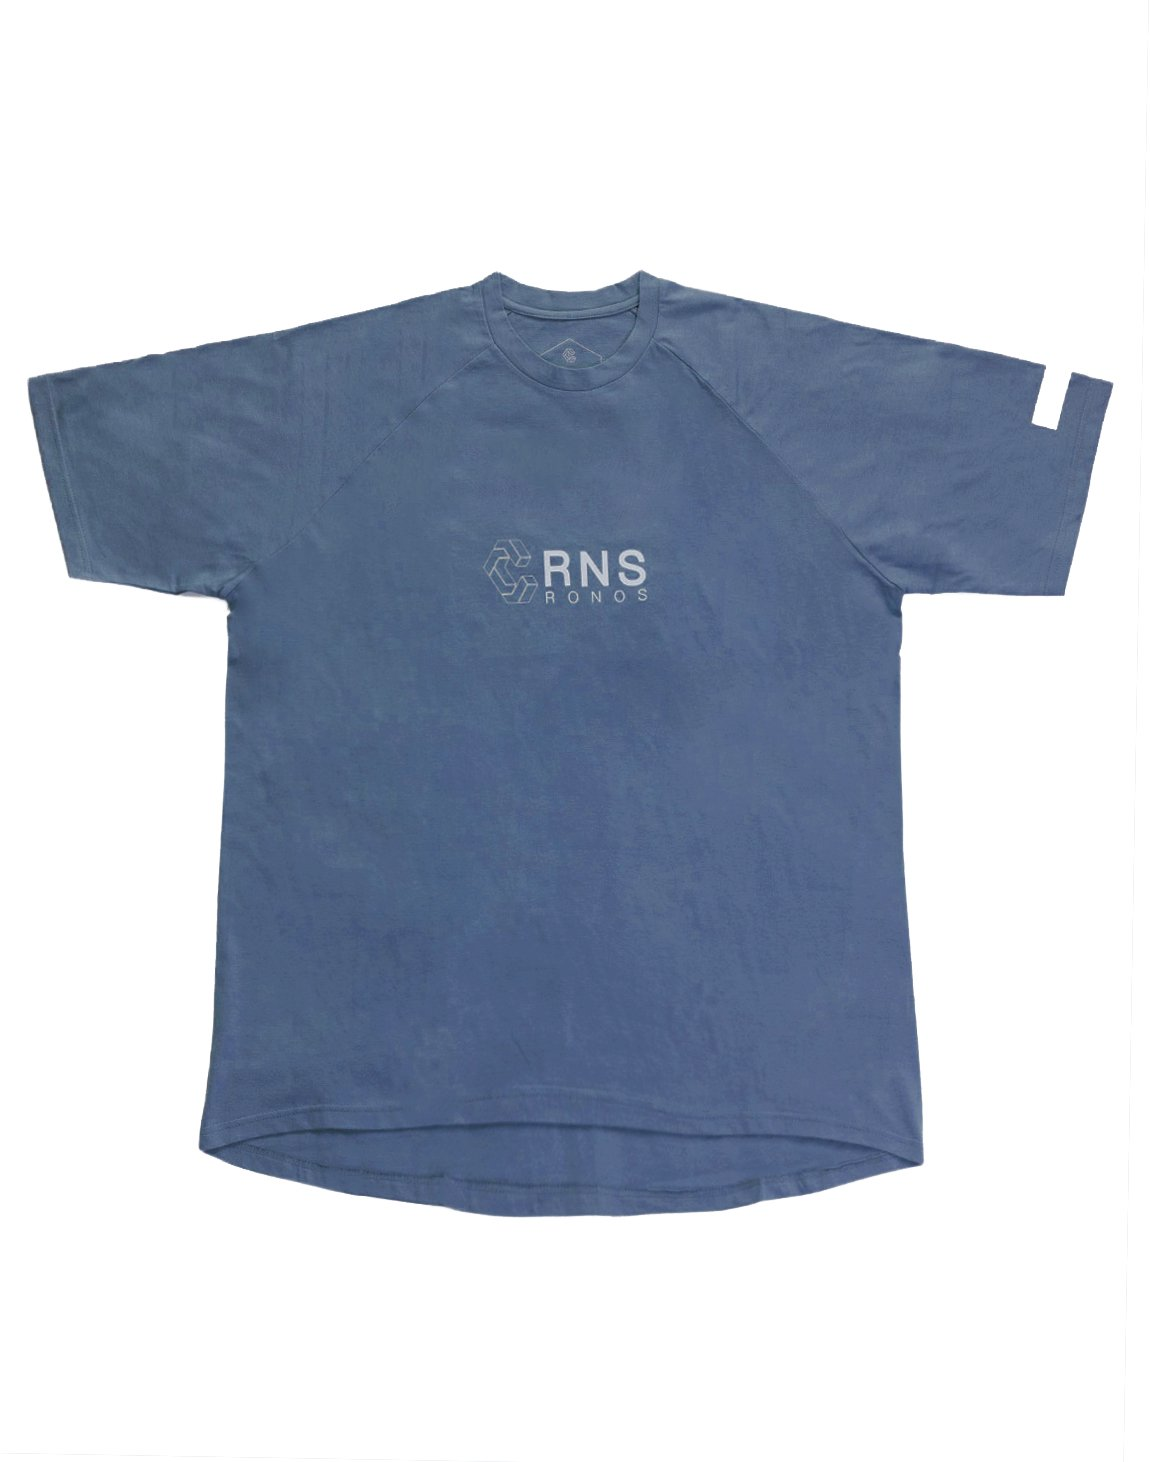 <img class='new_mark_img1' src='https://img.shop-pro.jp/img/new/icons1.gif' style='border:none;display:inline;margin:0px;padding:0px;width:auto;' />CRNS HEM ROUNDNESS T-SHIRTS 【BLUE】